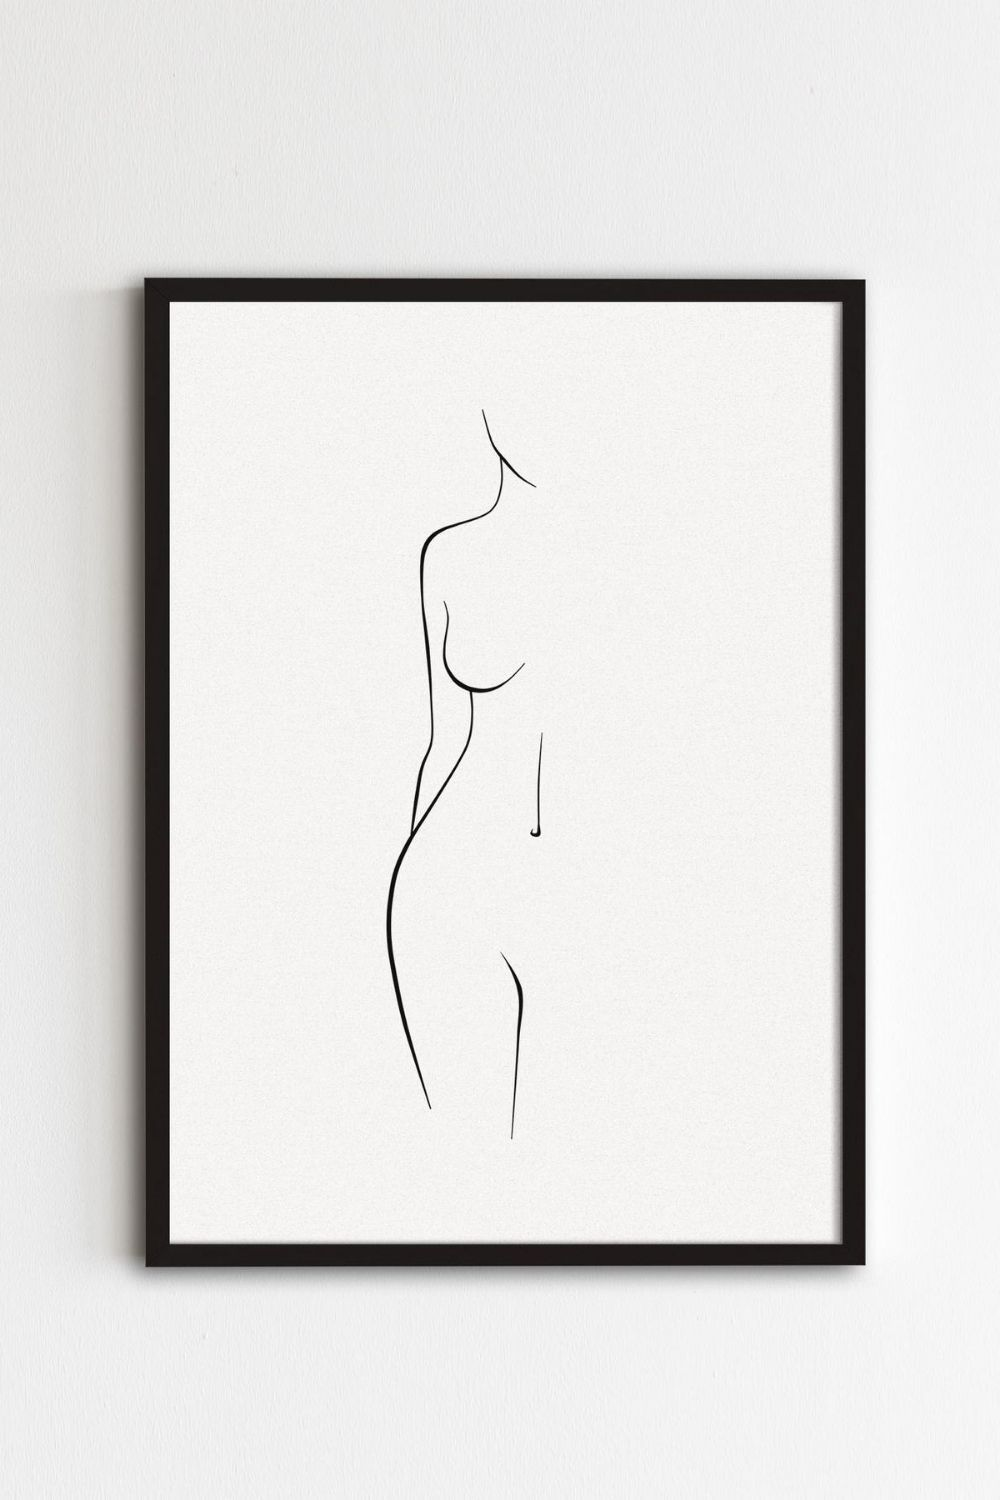 Minimal Line Woman Body Art, Minimalist Nude Art, Woman Body Shape Art, Body Outline Print, Naked Female Wall Art, Abstract Figure Poster